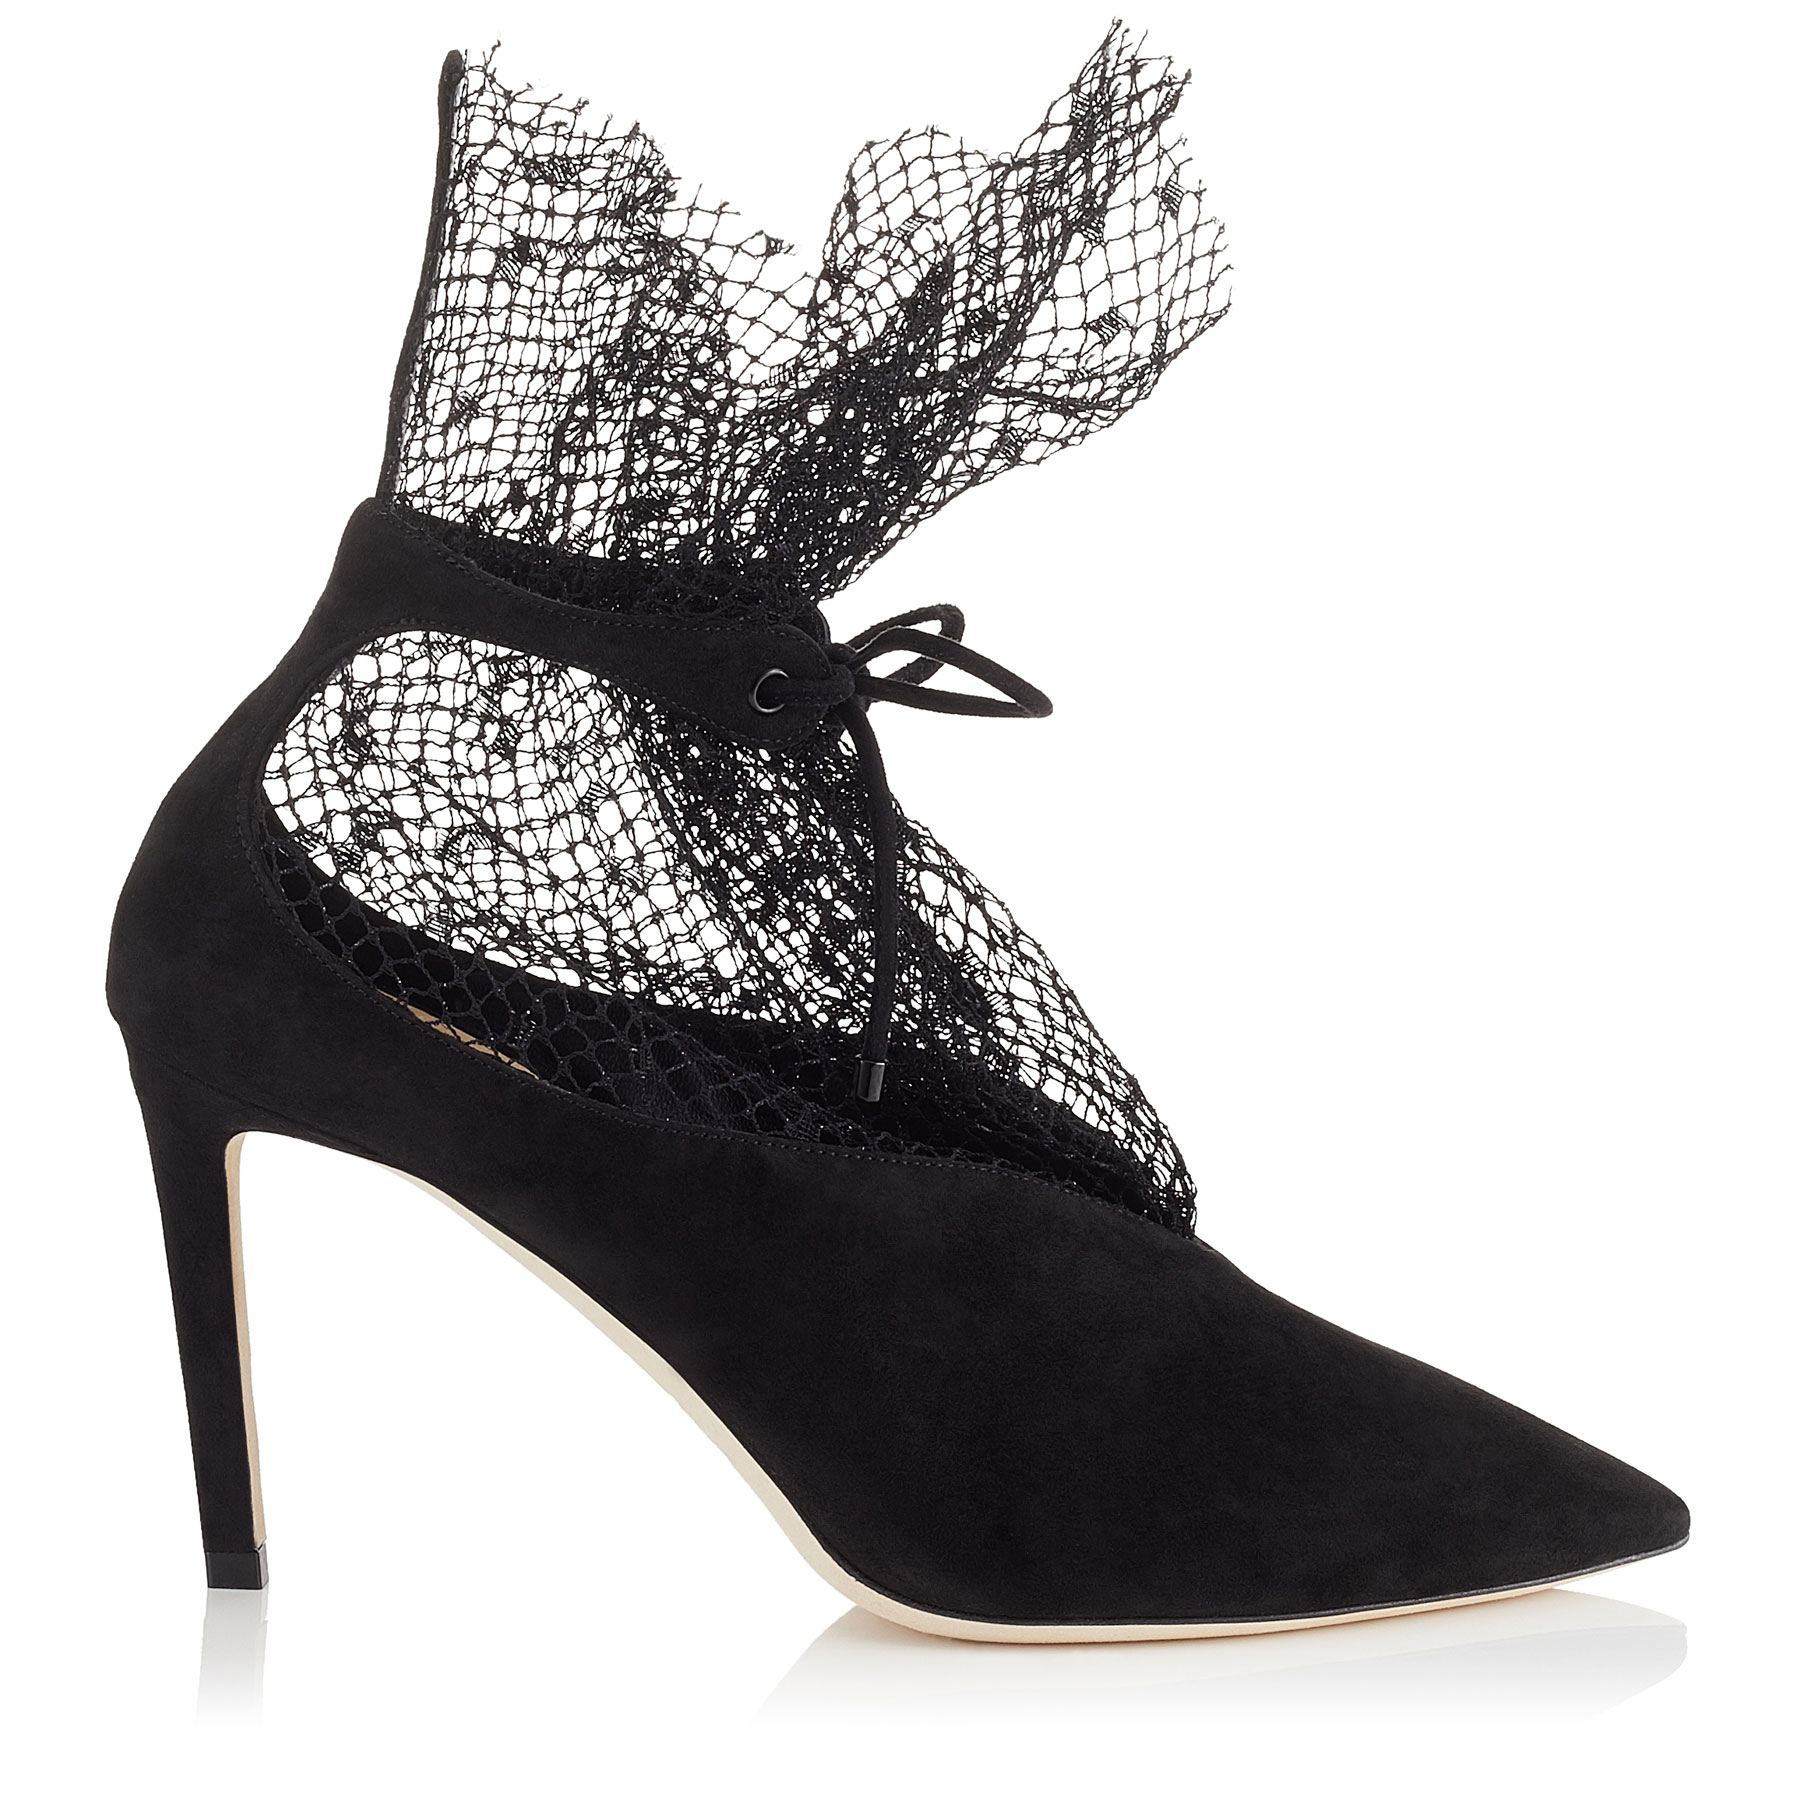 LEANNE 85 Black Suede Booties with Polka Dot Net by Jimmy Choo